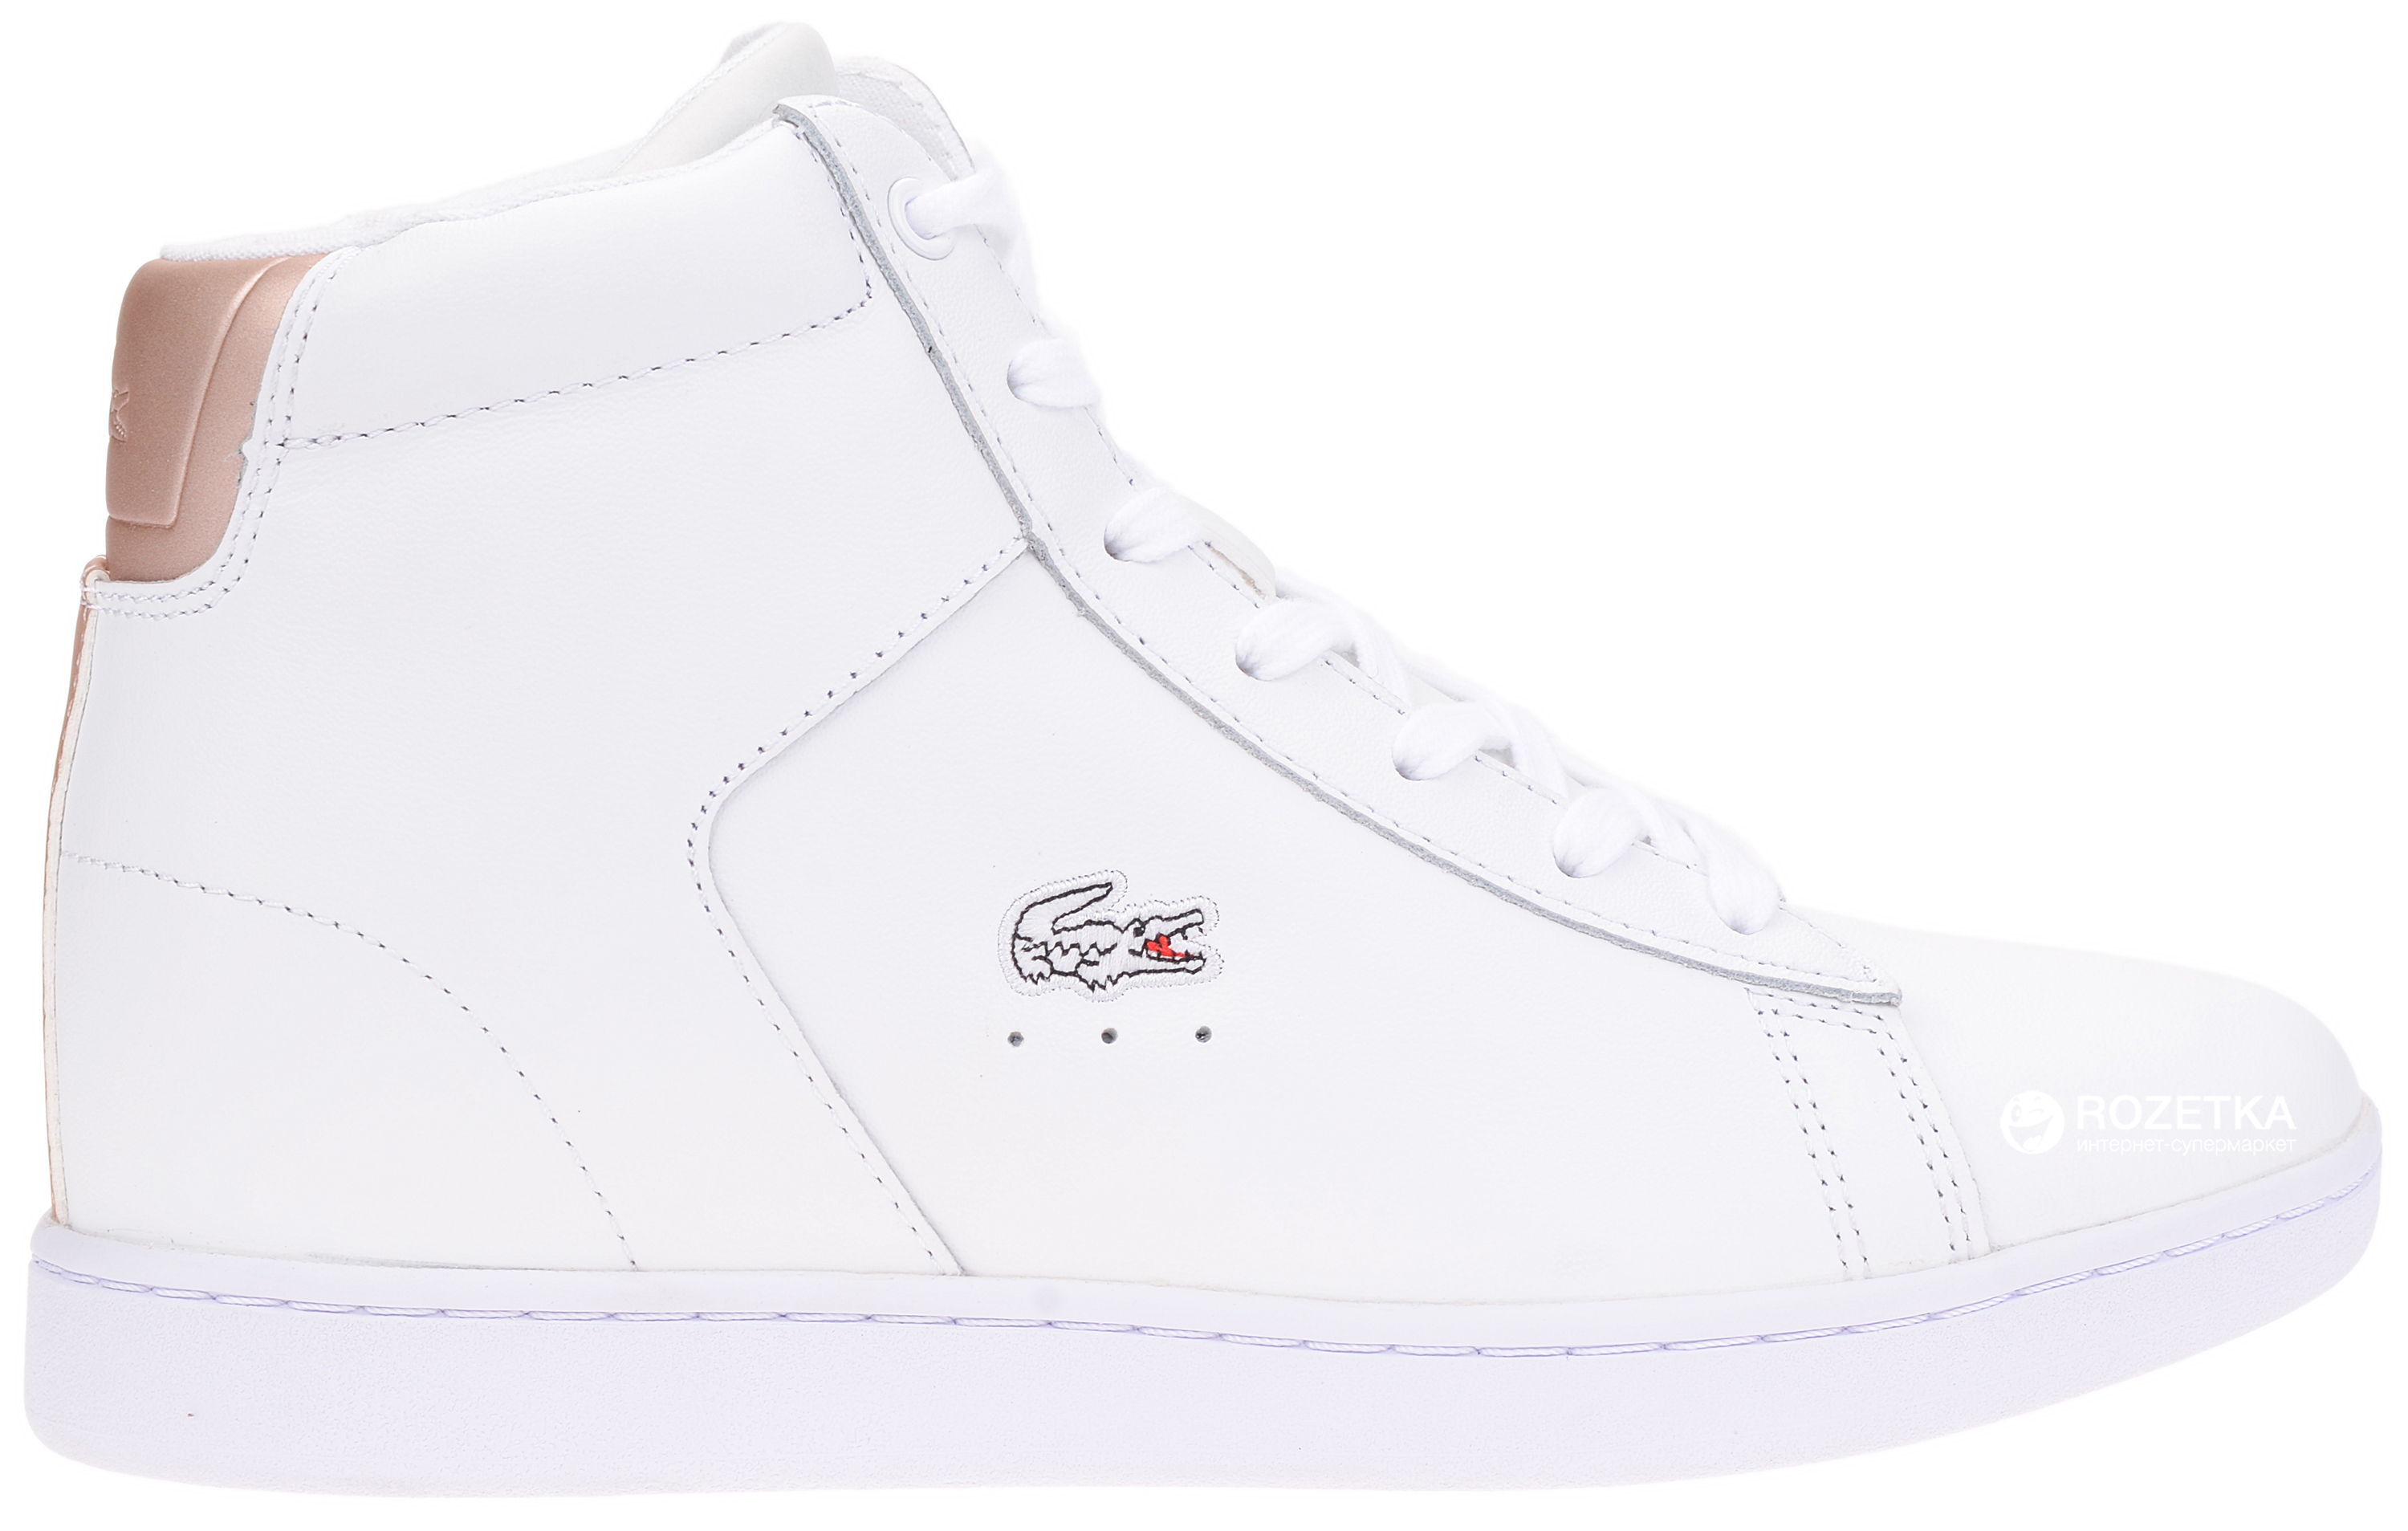 1fae8275869df Кеды Lacoste Carnaby Evo Wedge 317 3 734SPW0016001 39.5 (T6.5) 26 см